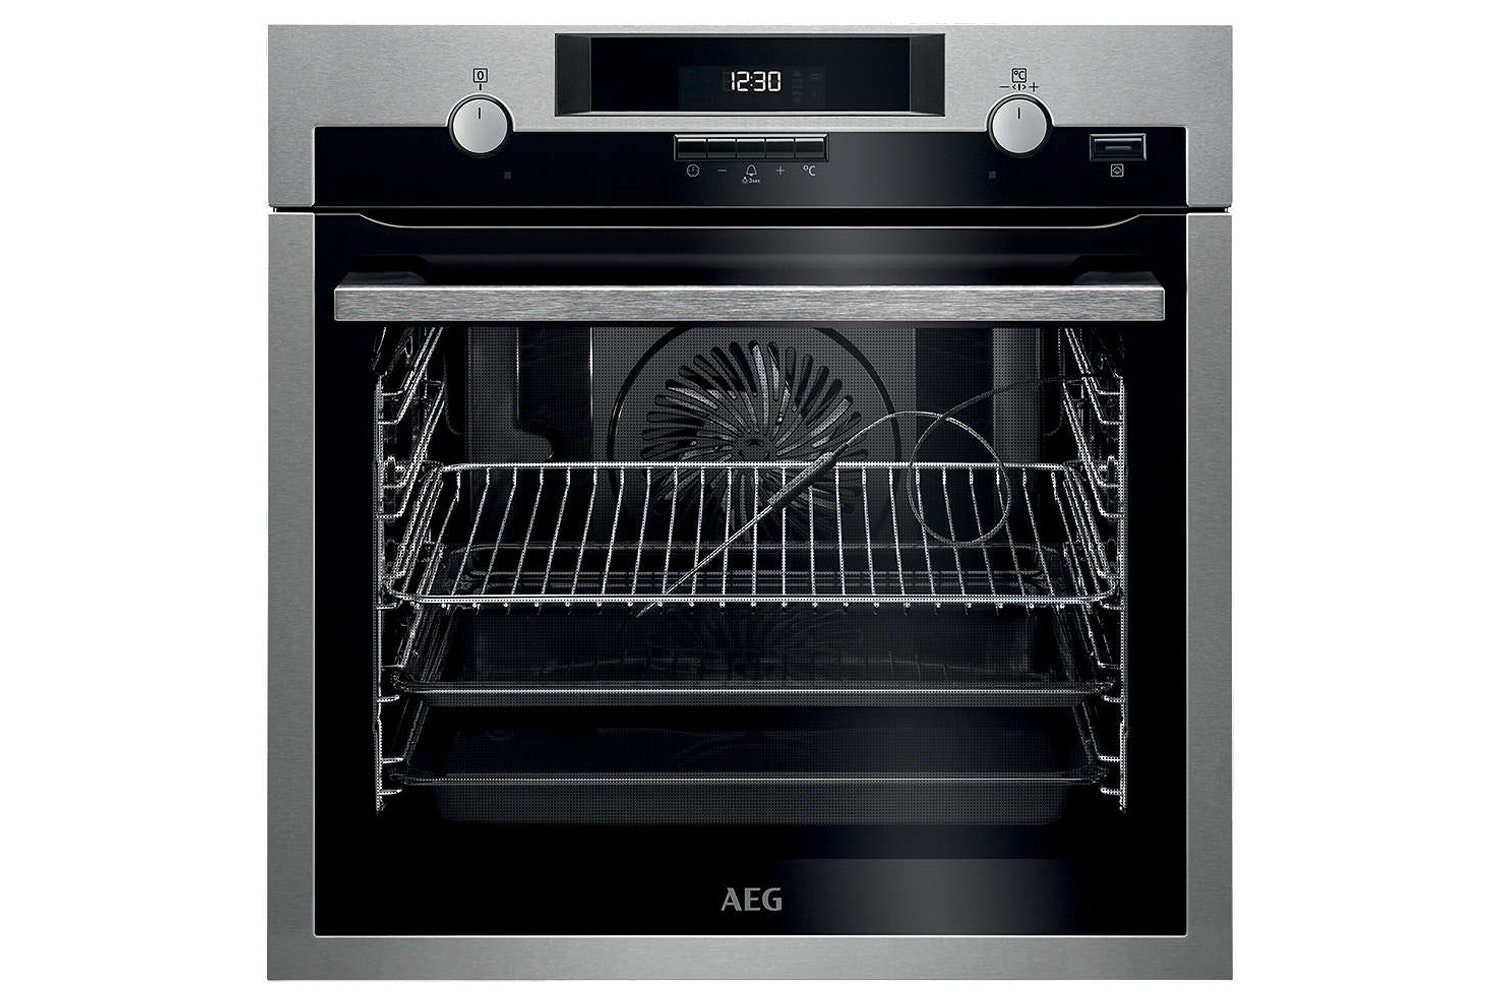 AEG SteamBake Built-in Single Oven | BPS552020M